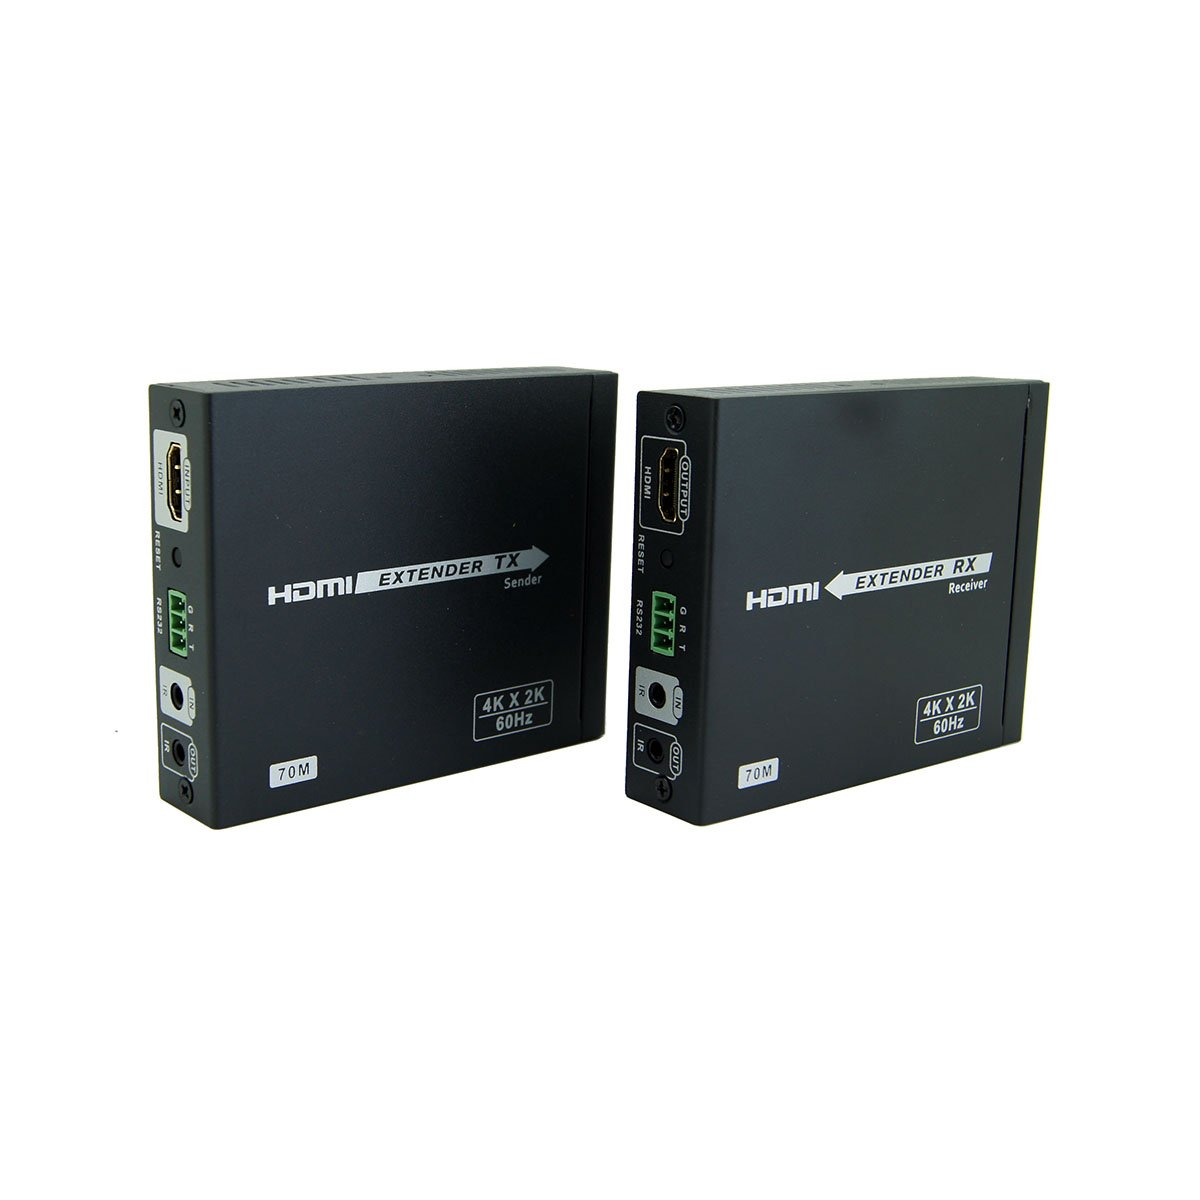 E-SDS HDBaseT2.0 HDMI Extender 4K@60HZ 4:4:4 Chroma, HDbaseT Extender over CAT6/6A/7 Cable up to 230ft Supports HDMI 2.0 18Gbps, HDR, HDCP 2.2, RS232, Bi-directional IR by E-SDS (Image #1)